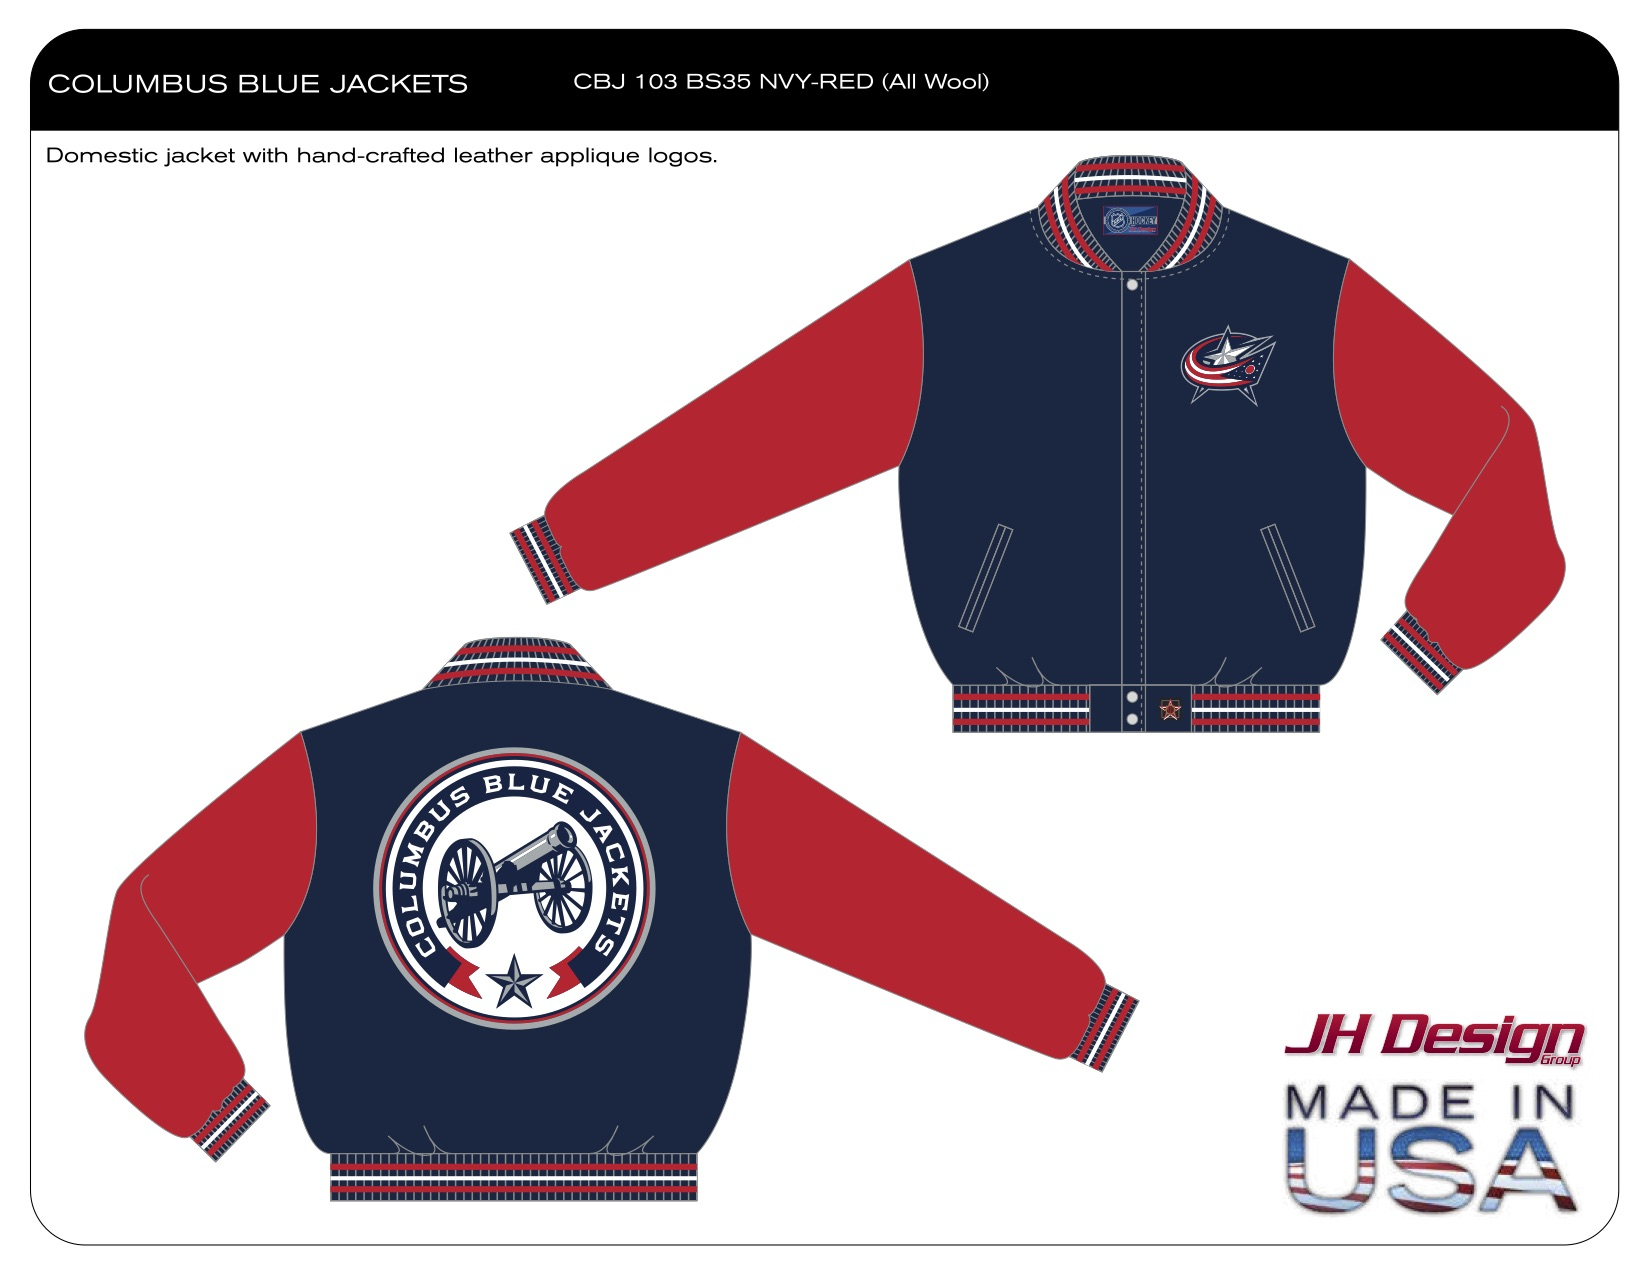 CBJ 103 BS35 NVY-RED